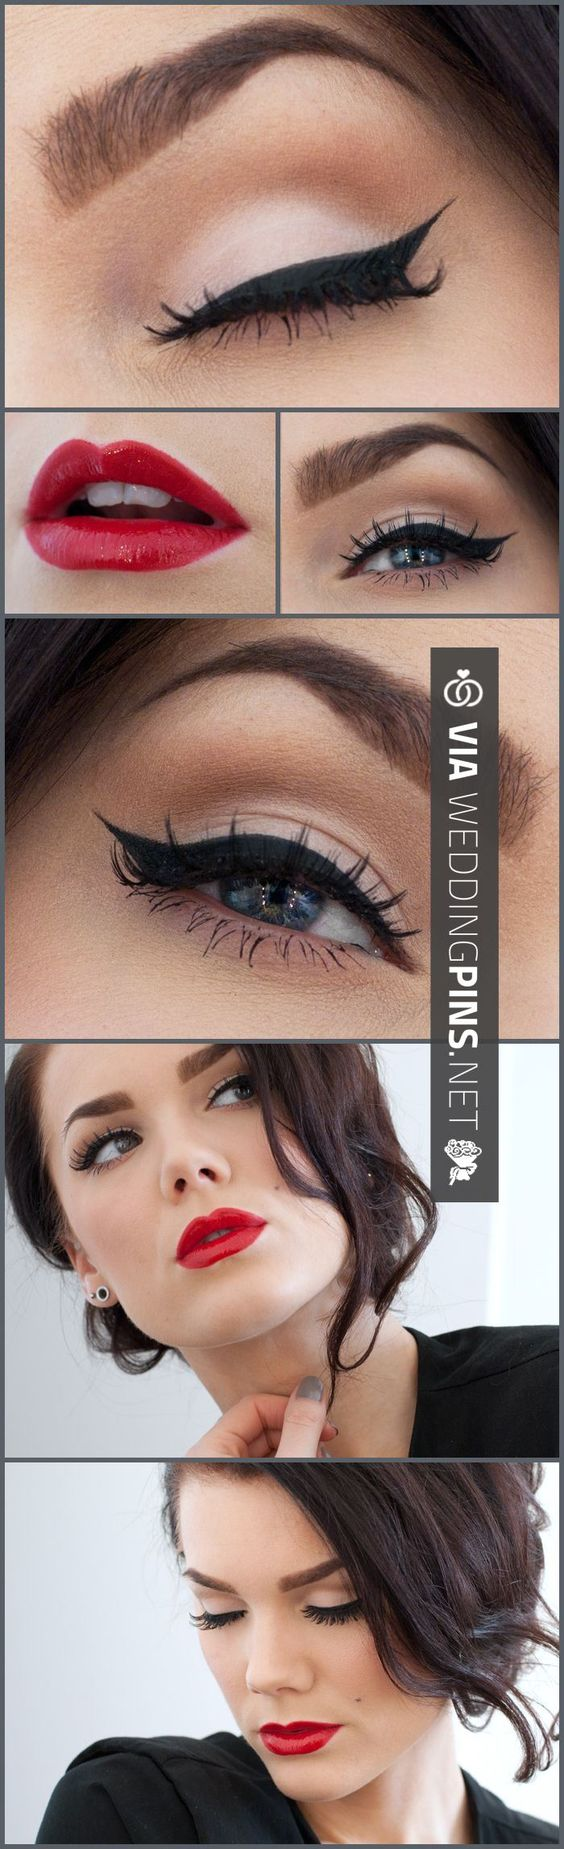 Hollywood Glam Wedding Makeup : Cool - old hollywood glam CHECK OUT MORE GREAT WEDDING ...